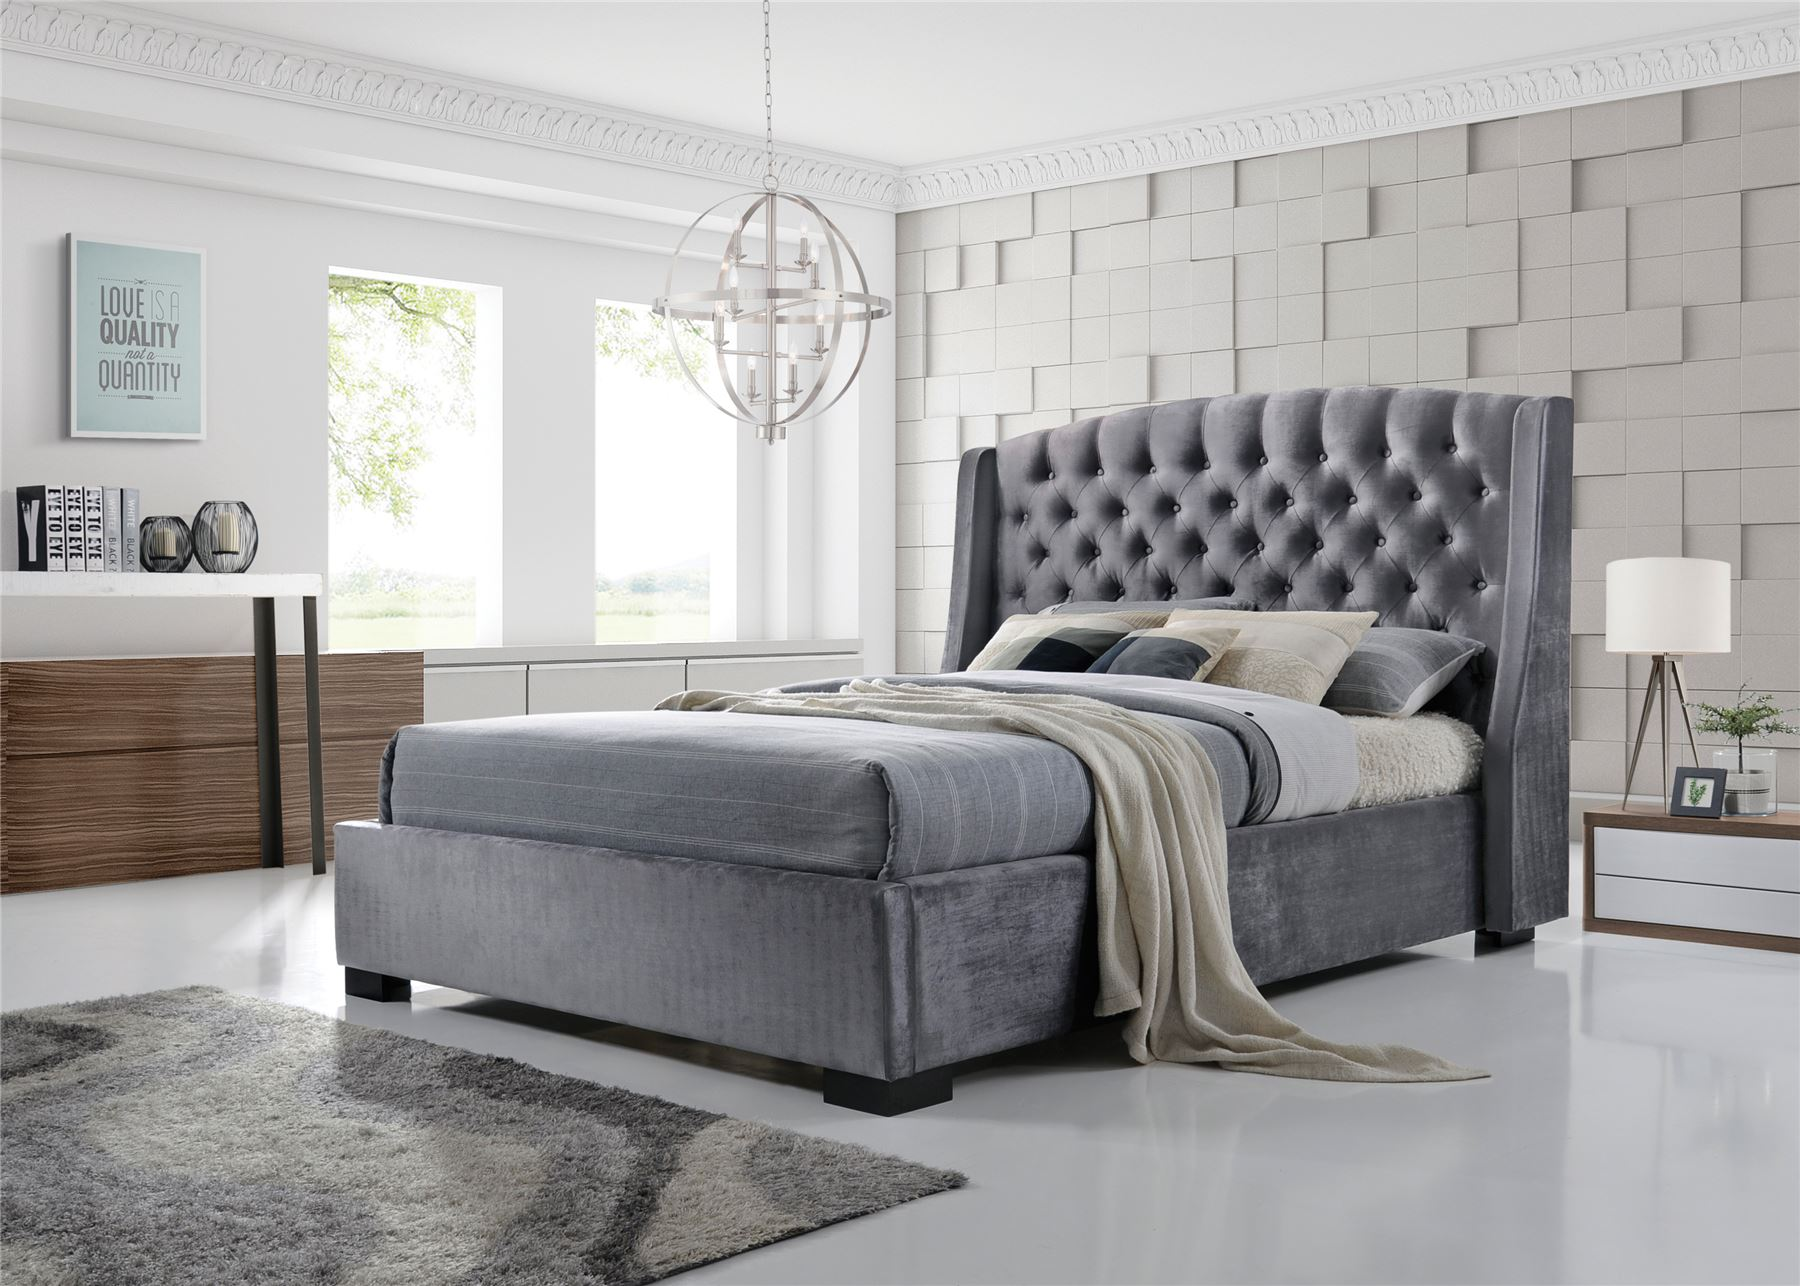 Brando Wing Back Chesterfield King Size Bed Frame 5ft